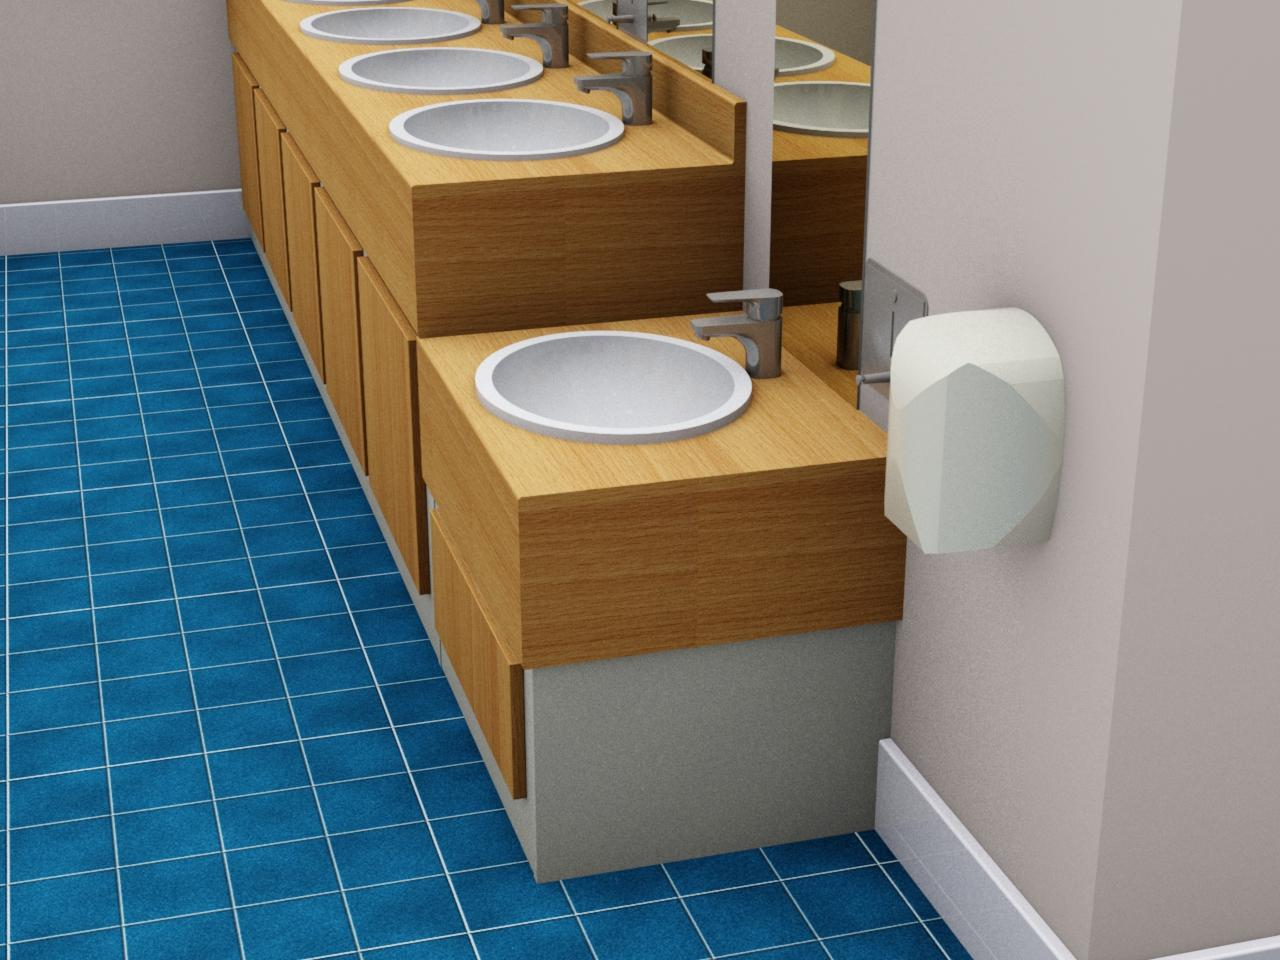 Original Washroom Toilet Cubicles Vanity Unis And Service